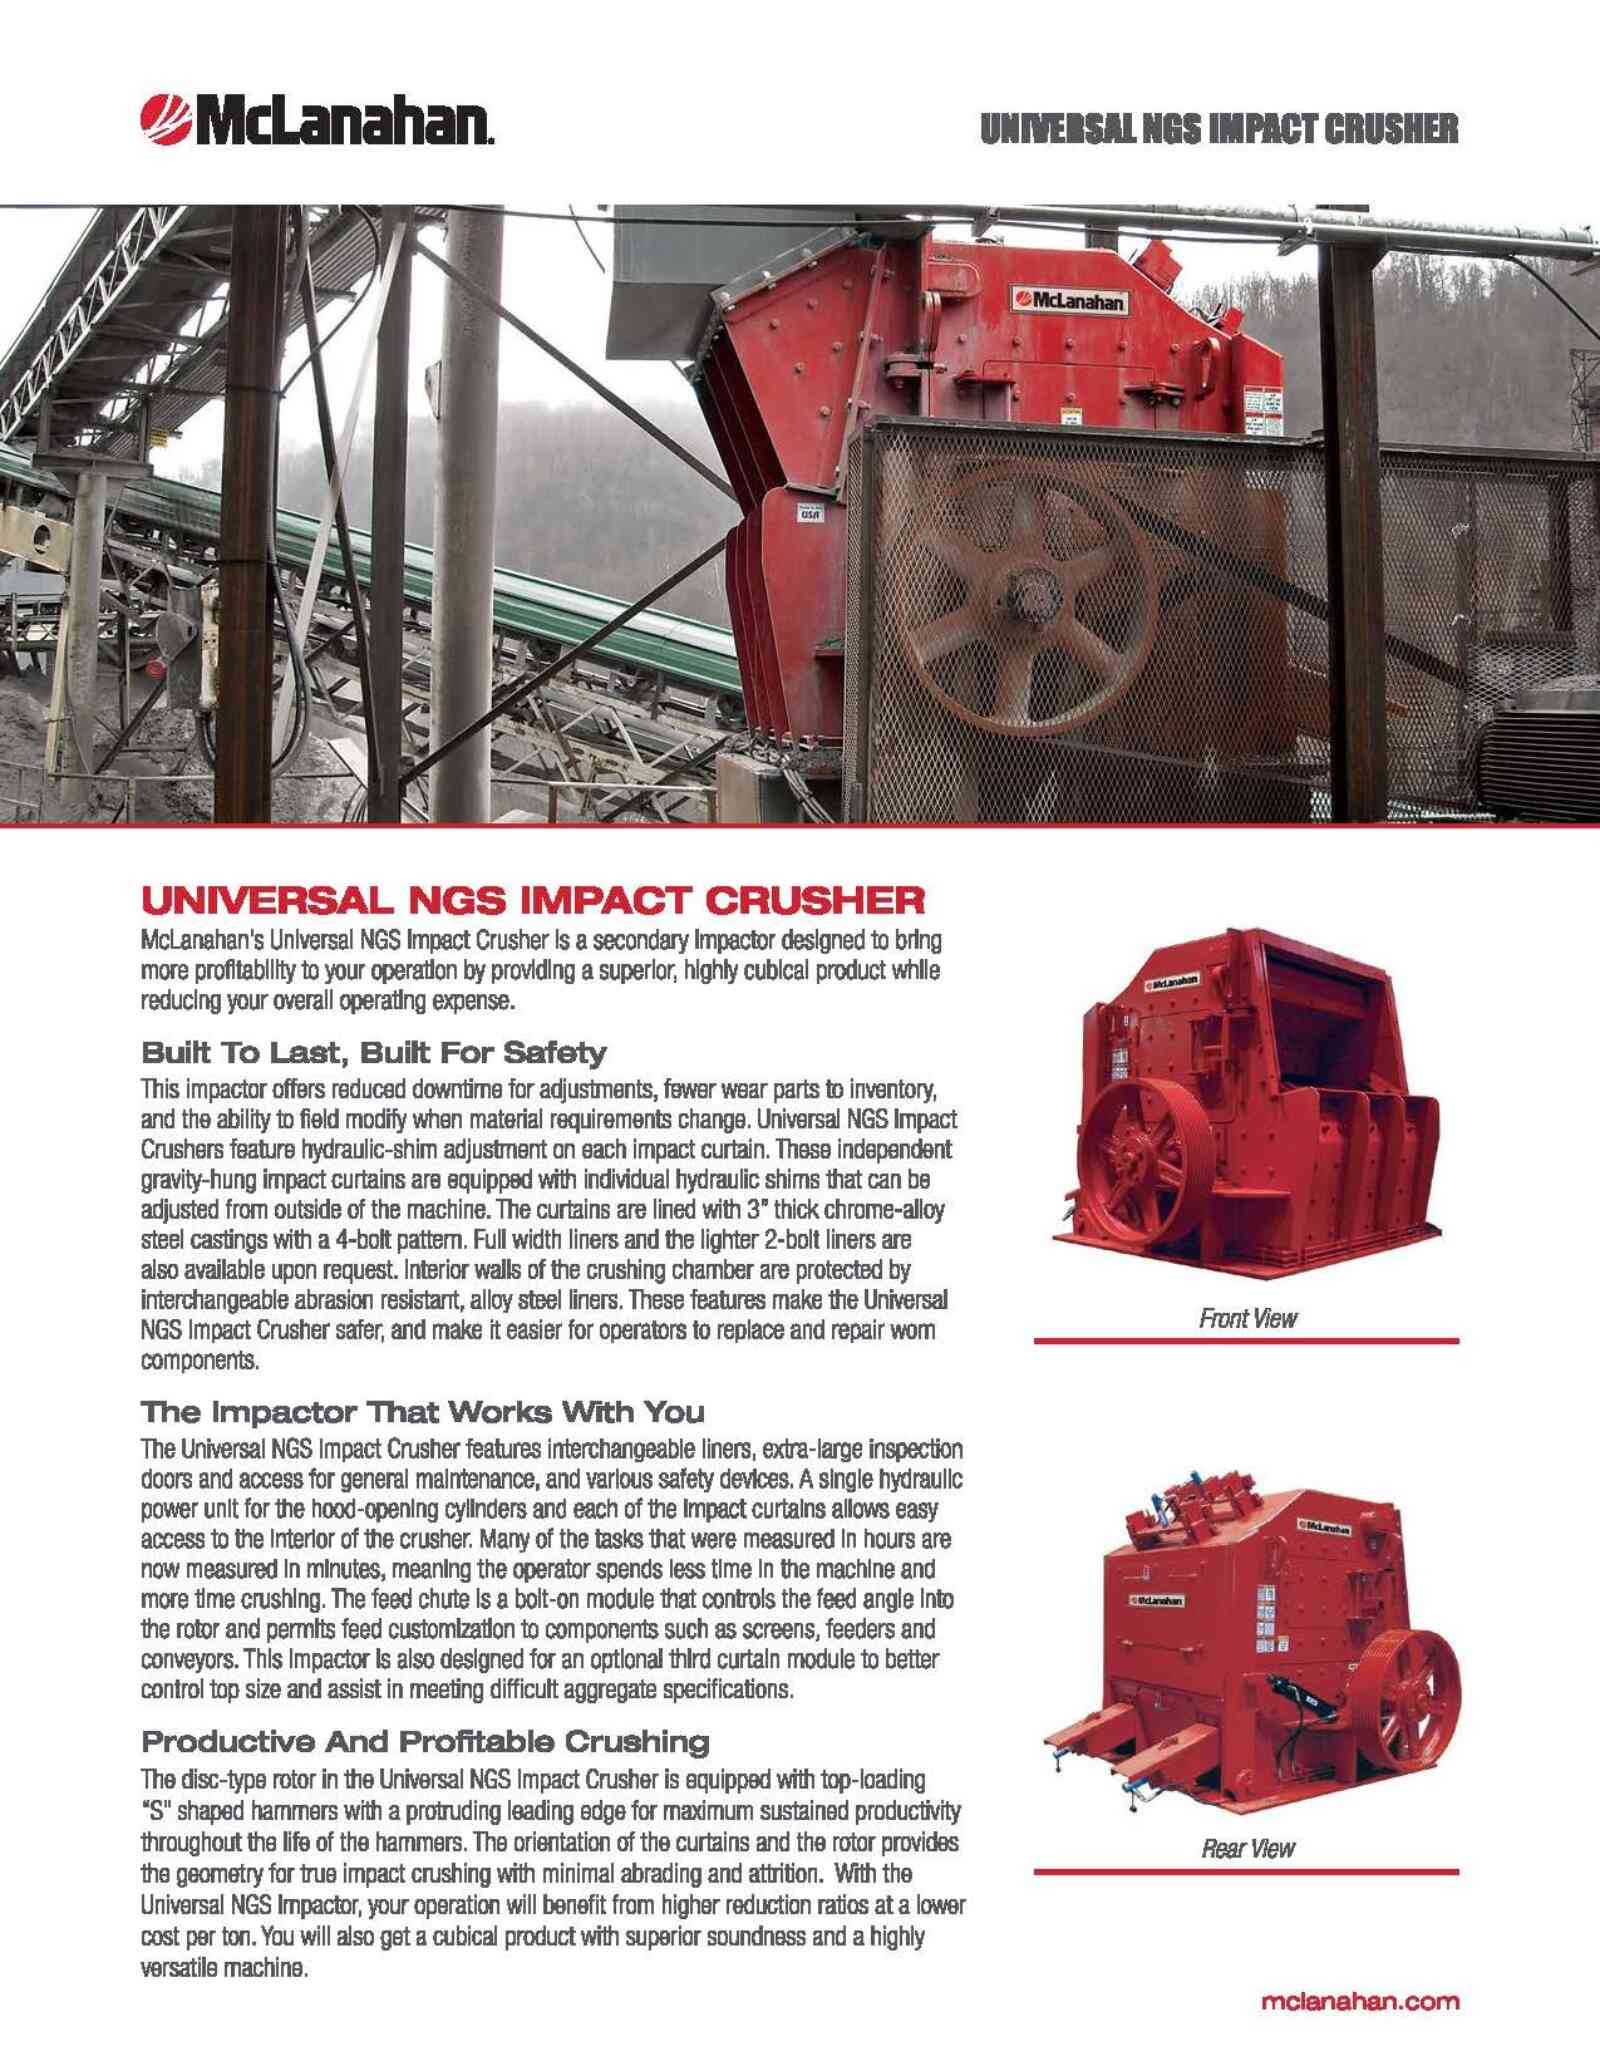 Ngs Impact Crusher Brochure Image Page 1